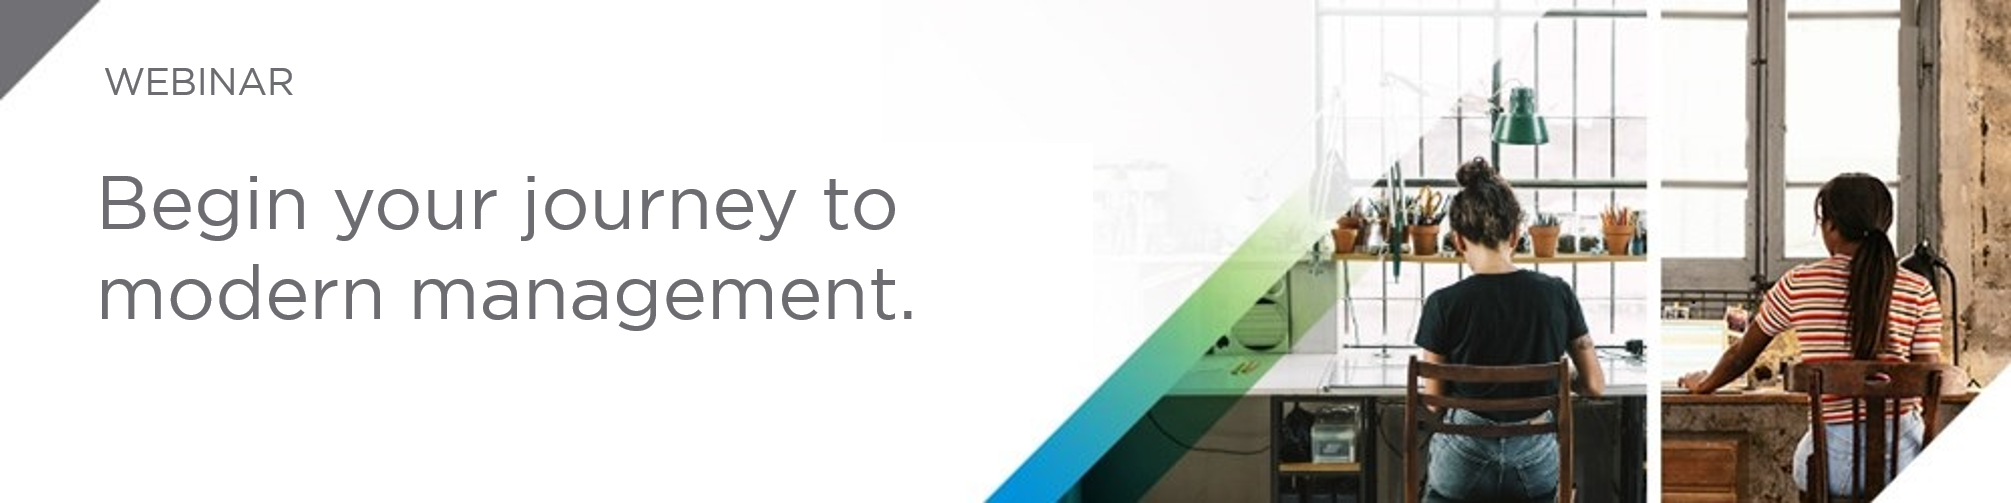 VMware Future Ready Registration Page Banner